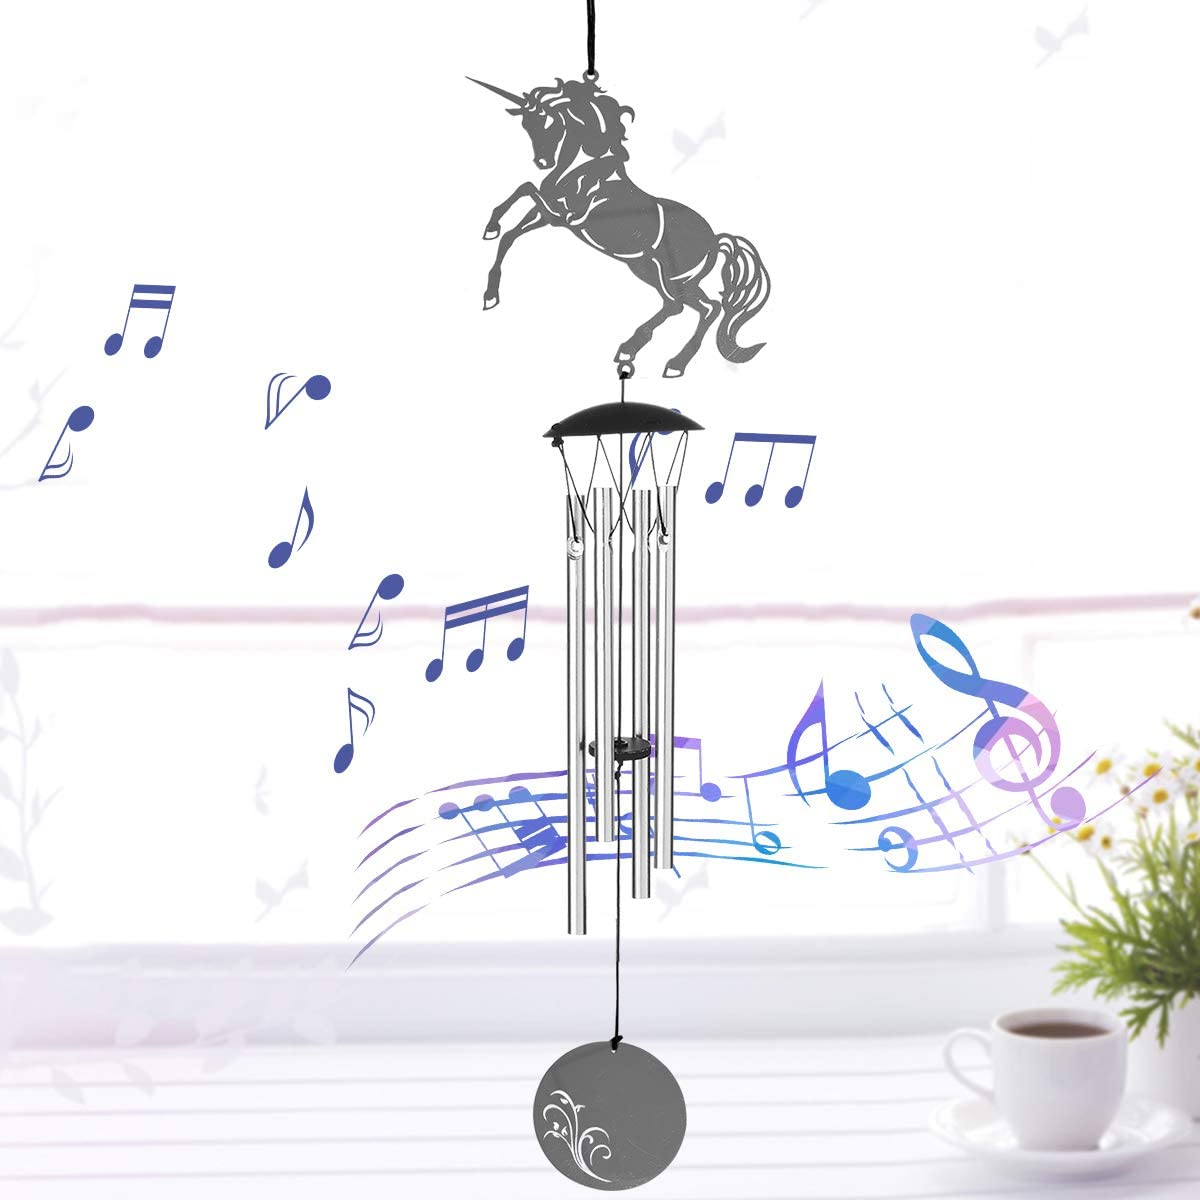 JOXJOZ 4 Aluminum Tuned Tubes Metal Wind Chimes Outdoor Indoor, Metal Wind Bell Chimes for Garden Patio Yard Decor-Wind Chime Wall Hanging for Home Decoration or Birthday Party Gift (Unicorn)